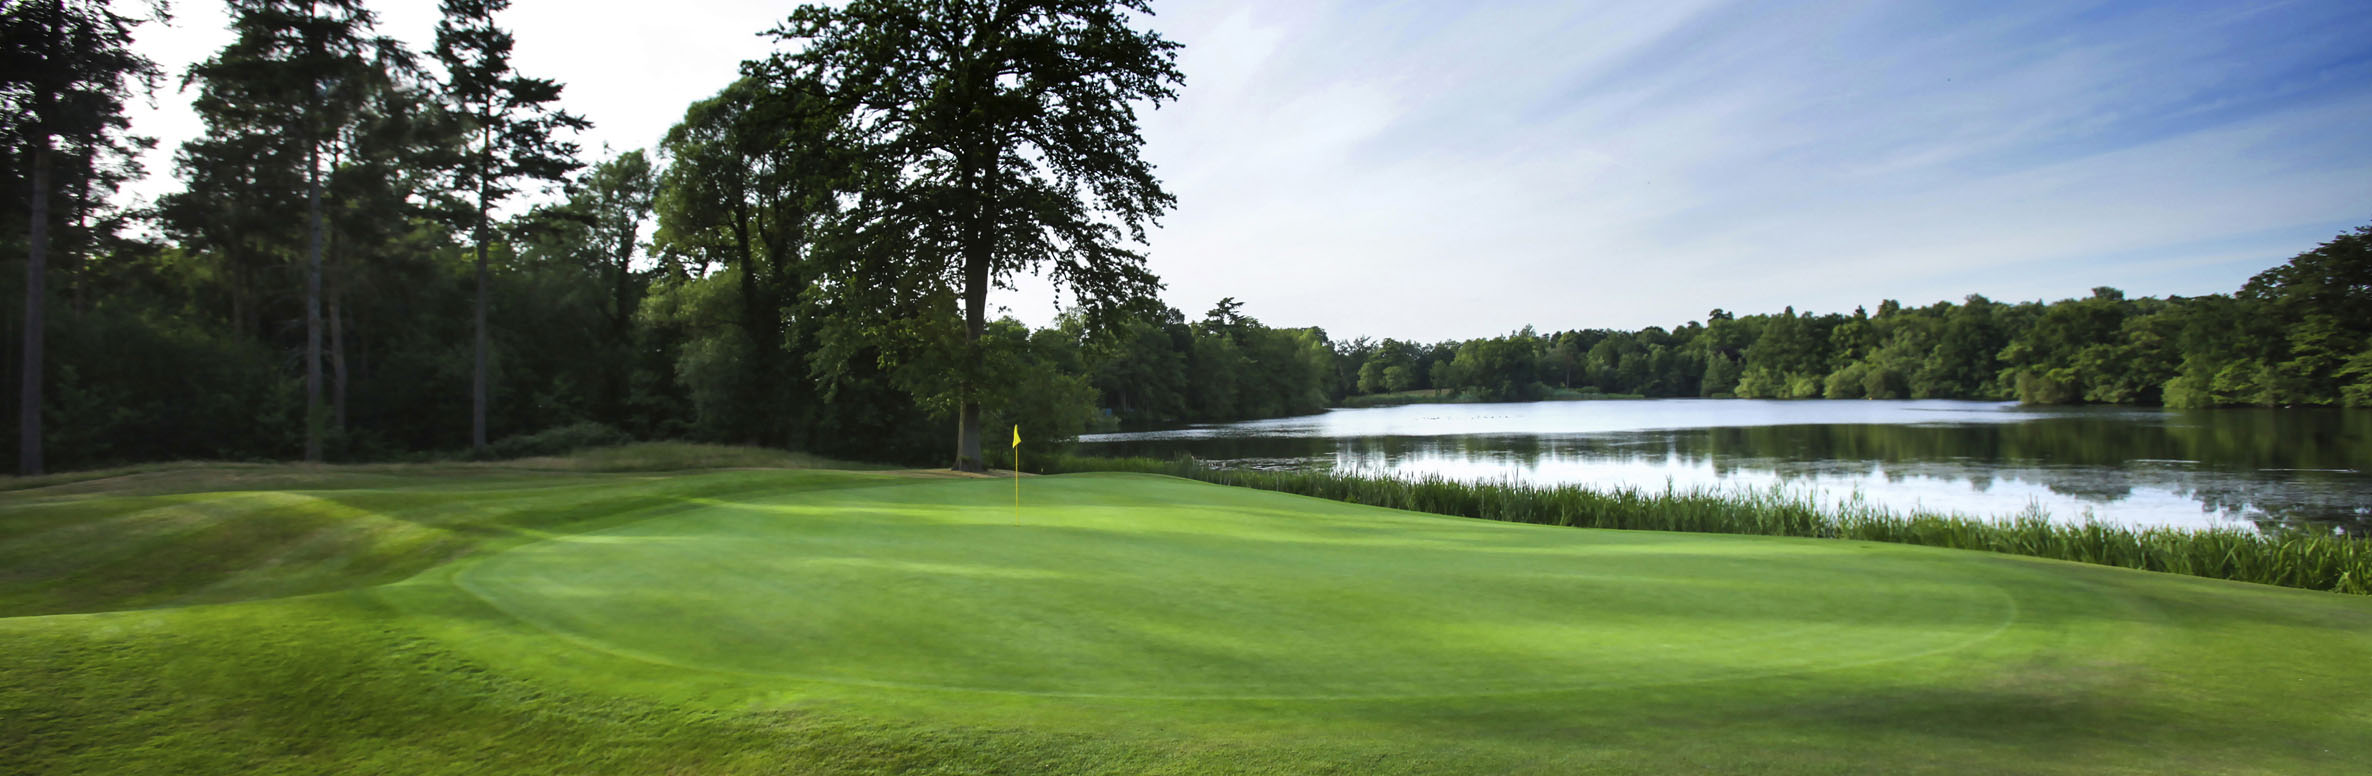 Golf Course Image - Bearwood Lakes Golf Club No. 14